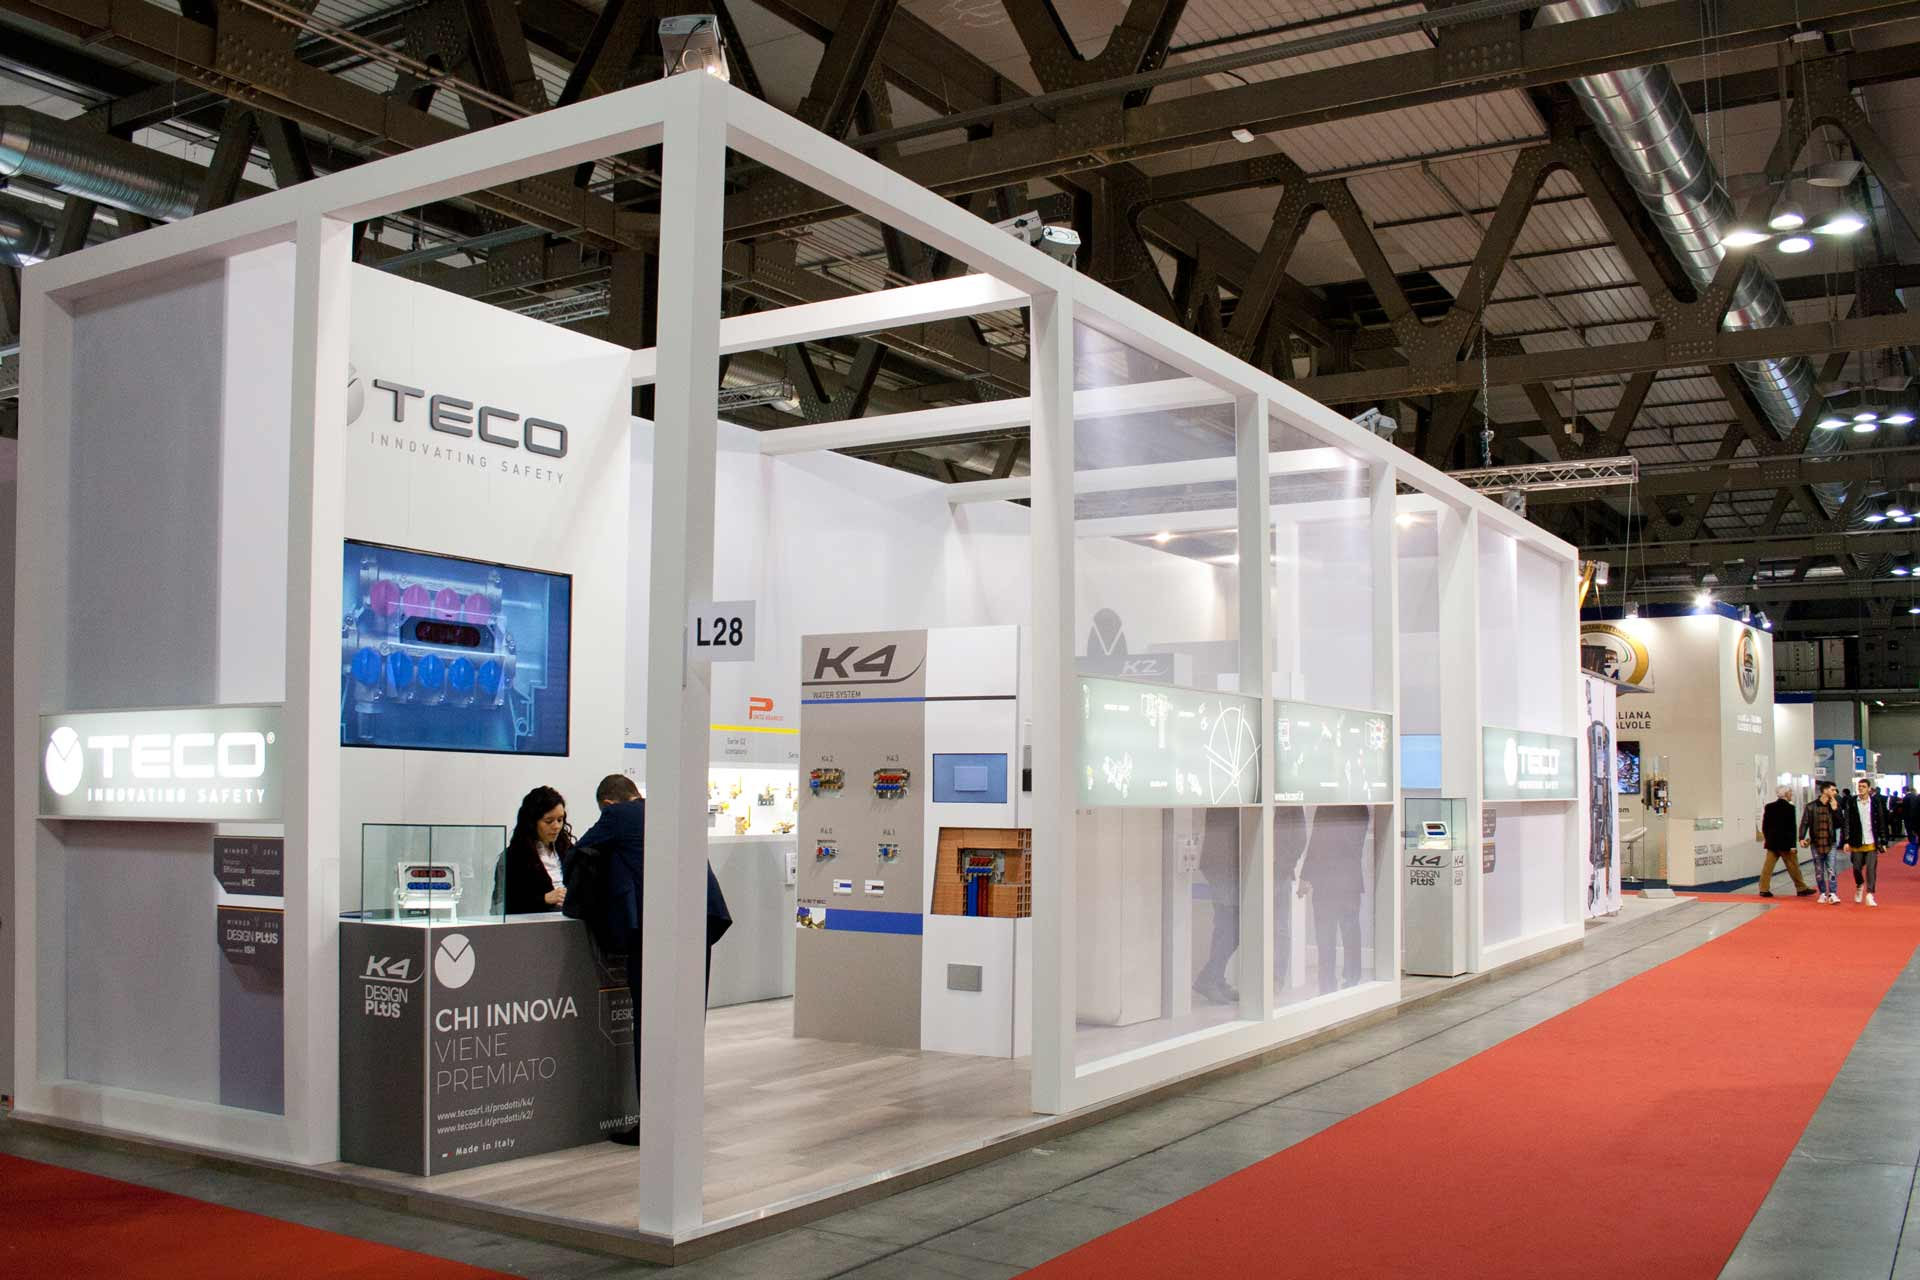 domenico_orefice_design_studio_environment_teco_mce_stand_02